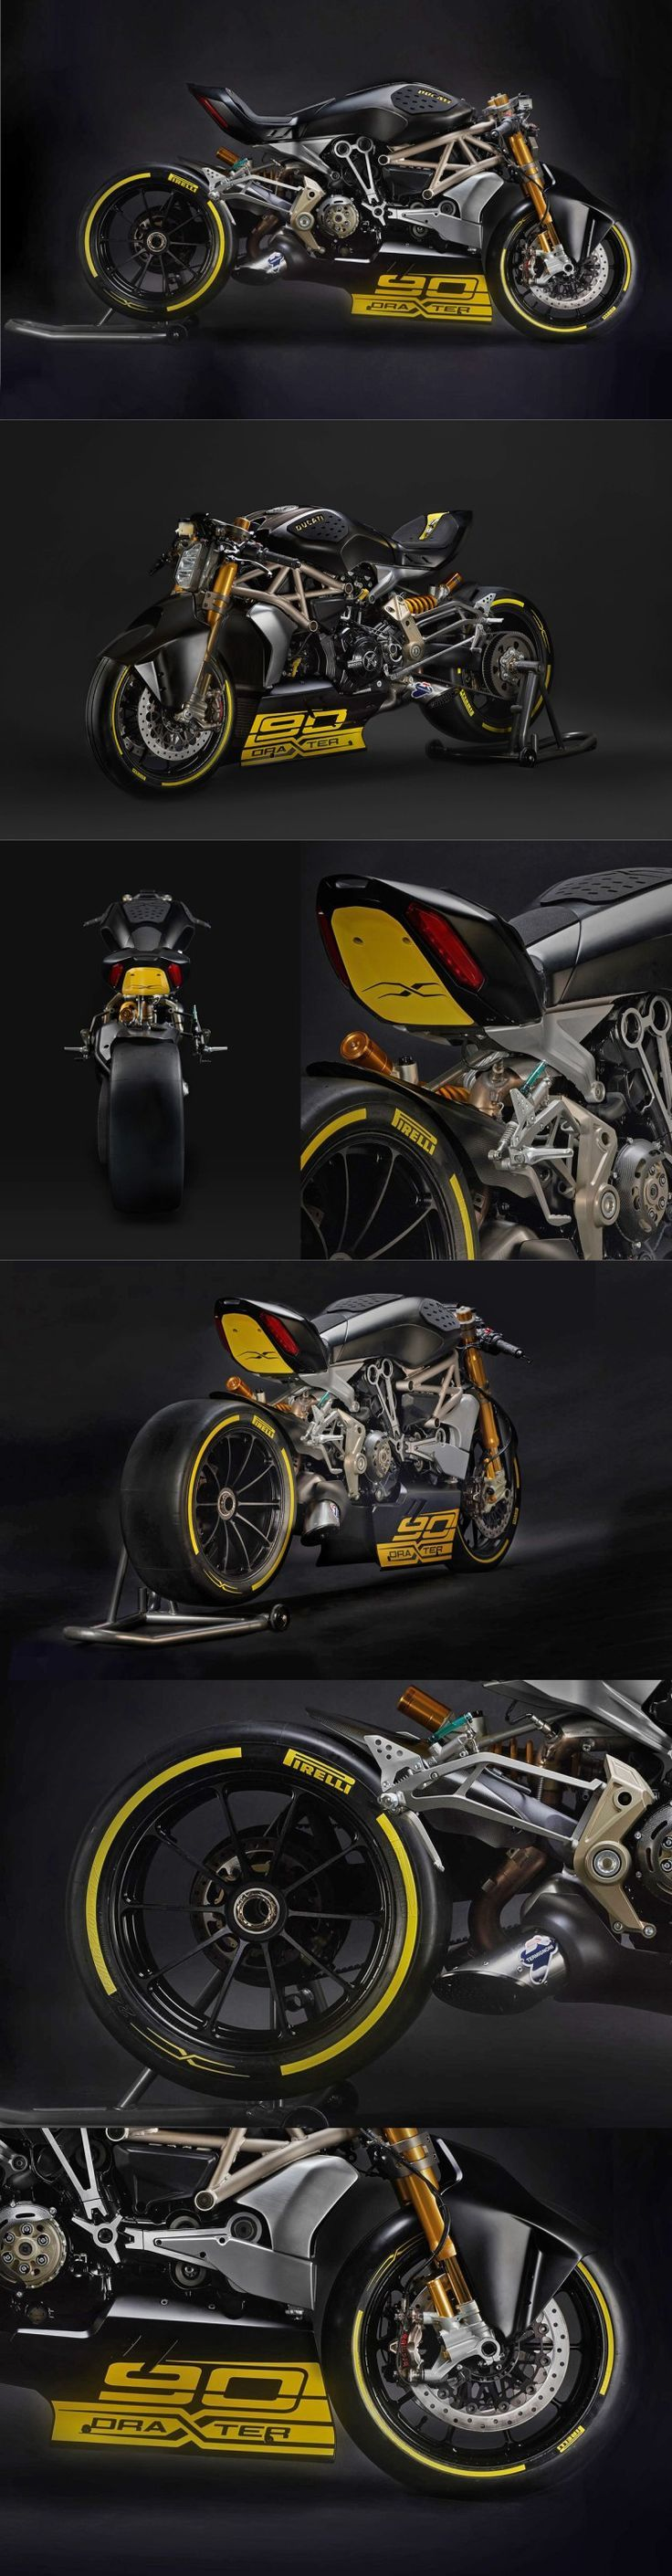 Ducati Diavel DraXter - Return of the Cafe Racers... - http://doctorforlove.info/ducati-diavel-draxter-return-of-the-cafe-racers